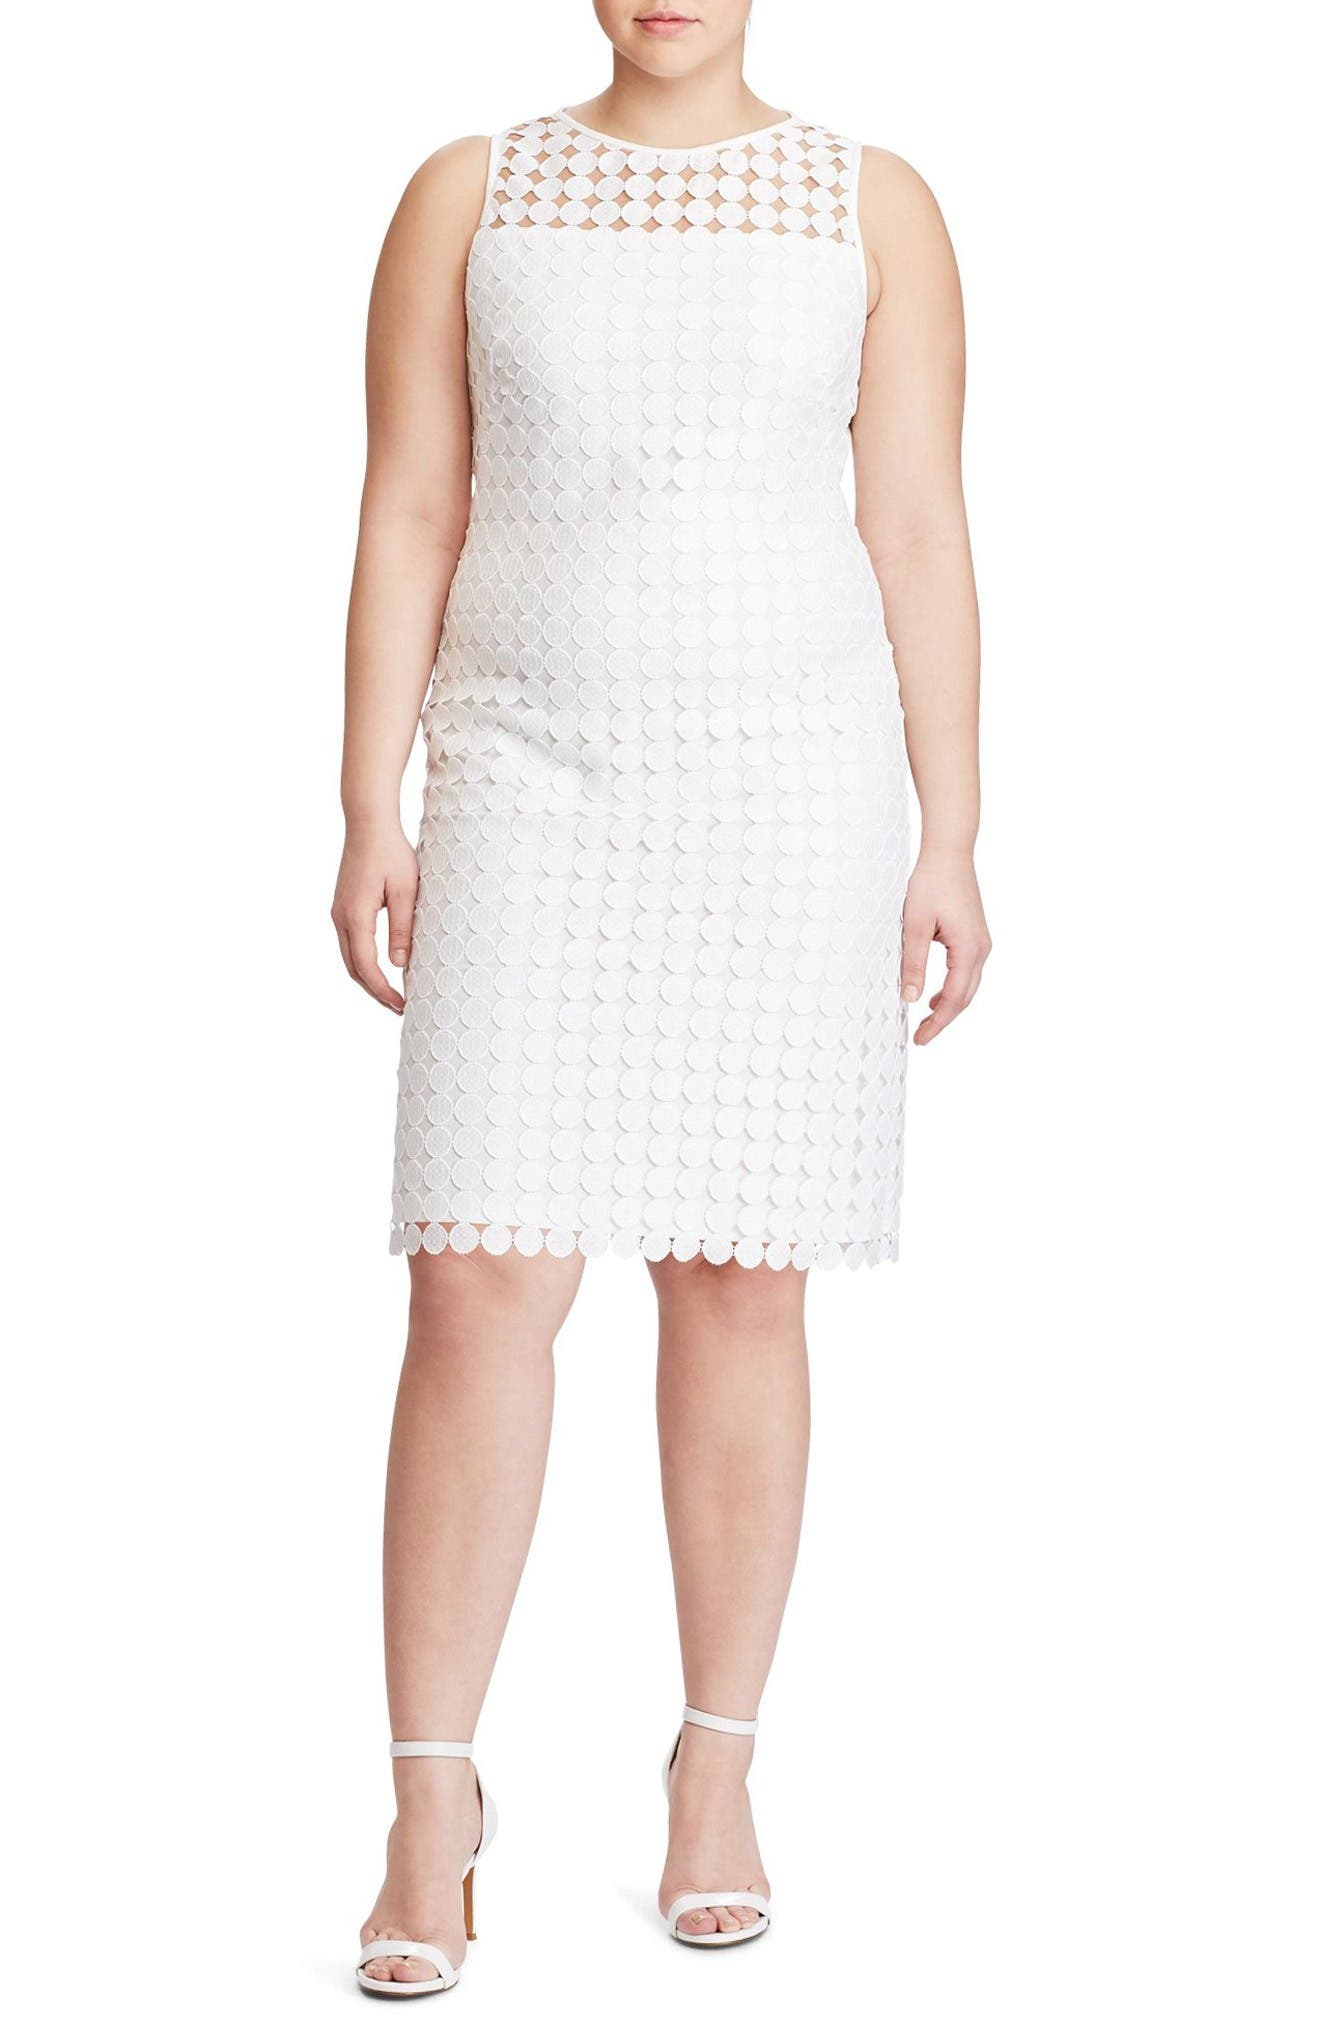 Lauren Ralph Lauren Dot Lace Sheath Dress (Plus Size)